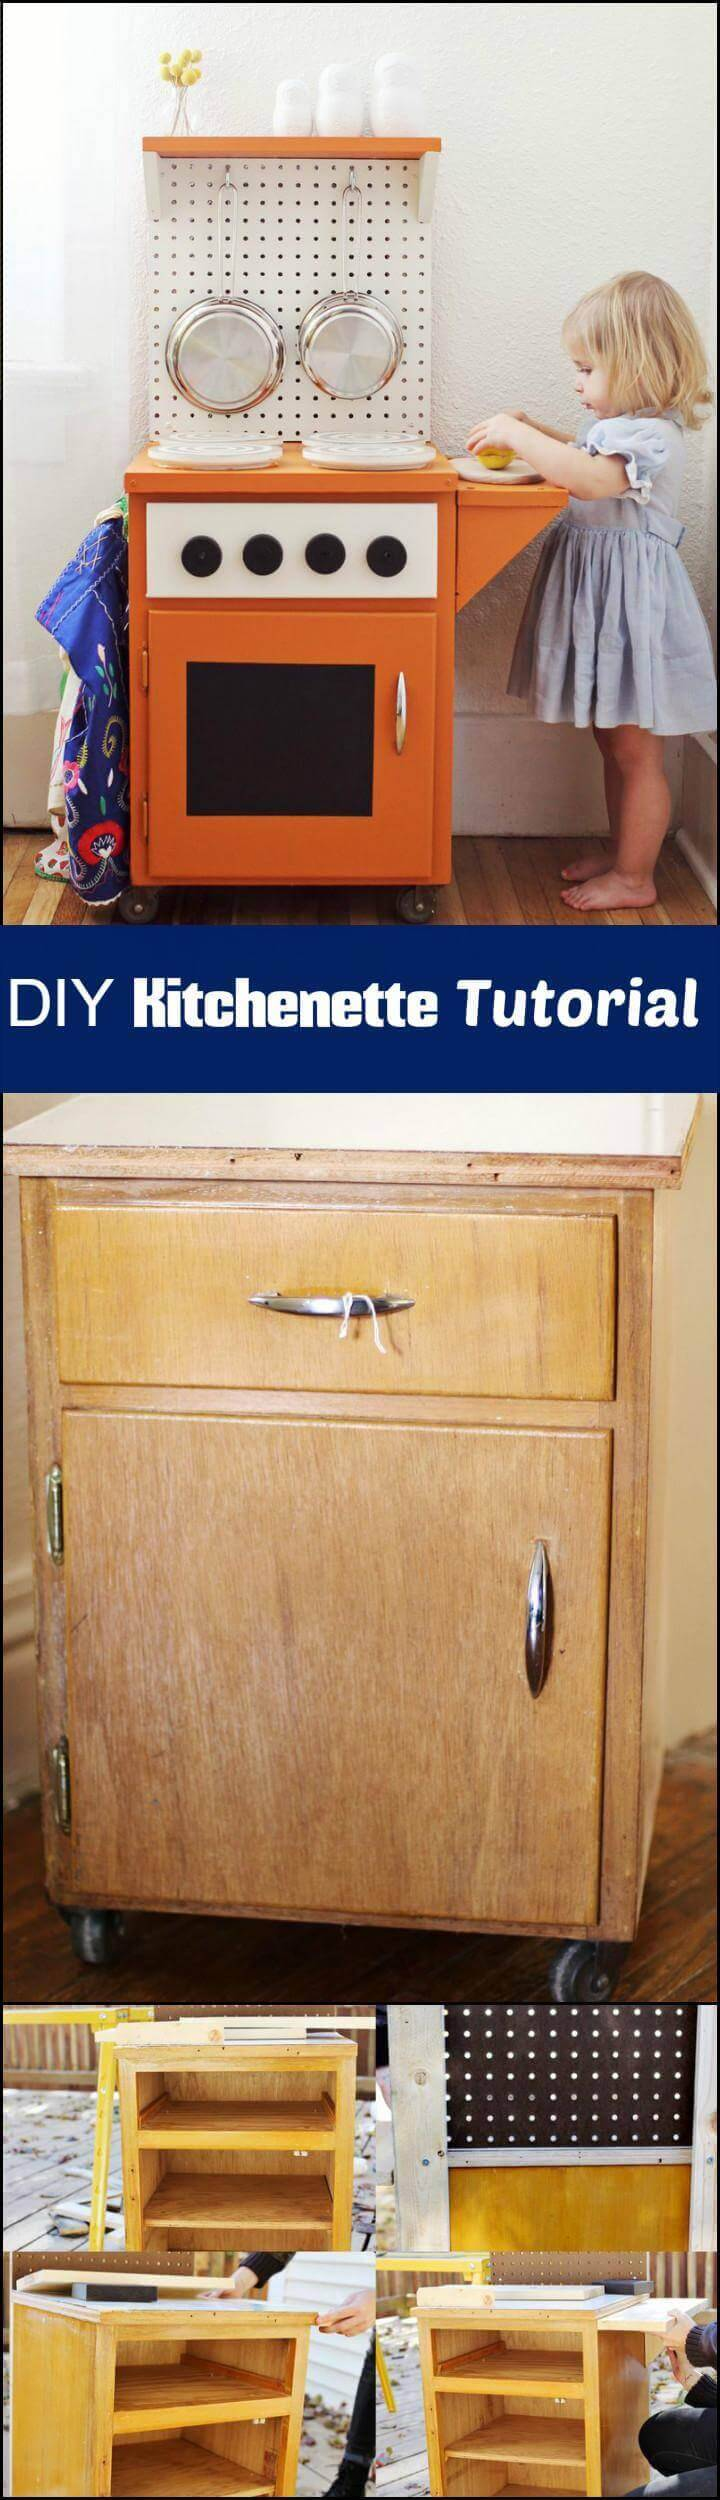 DIY handmade kitchenette tutorial